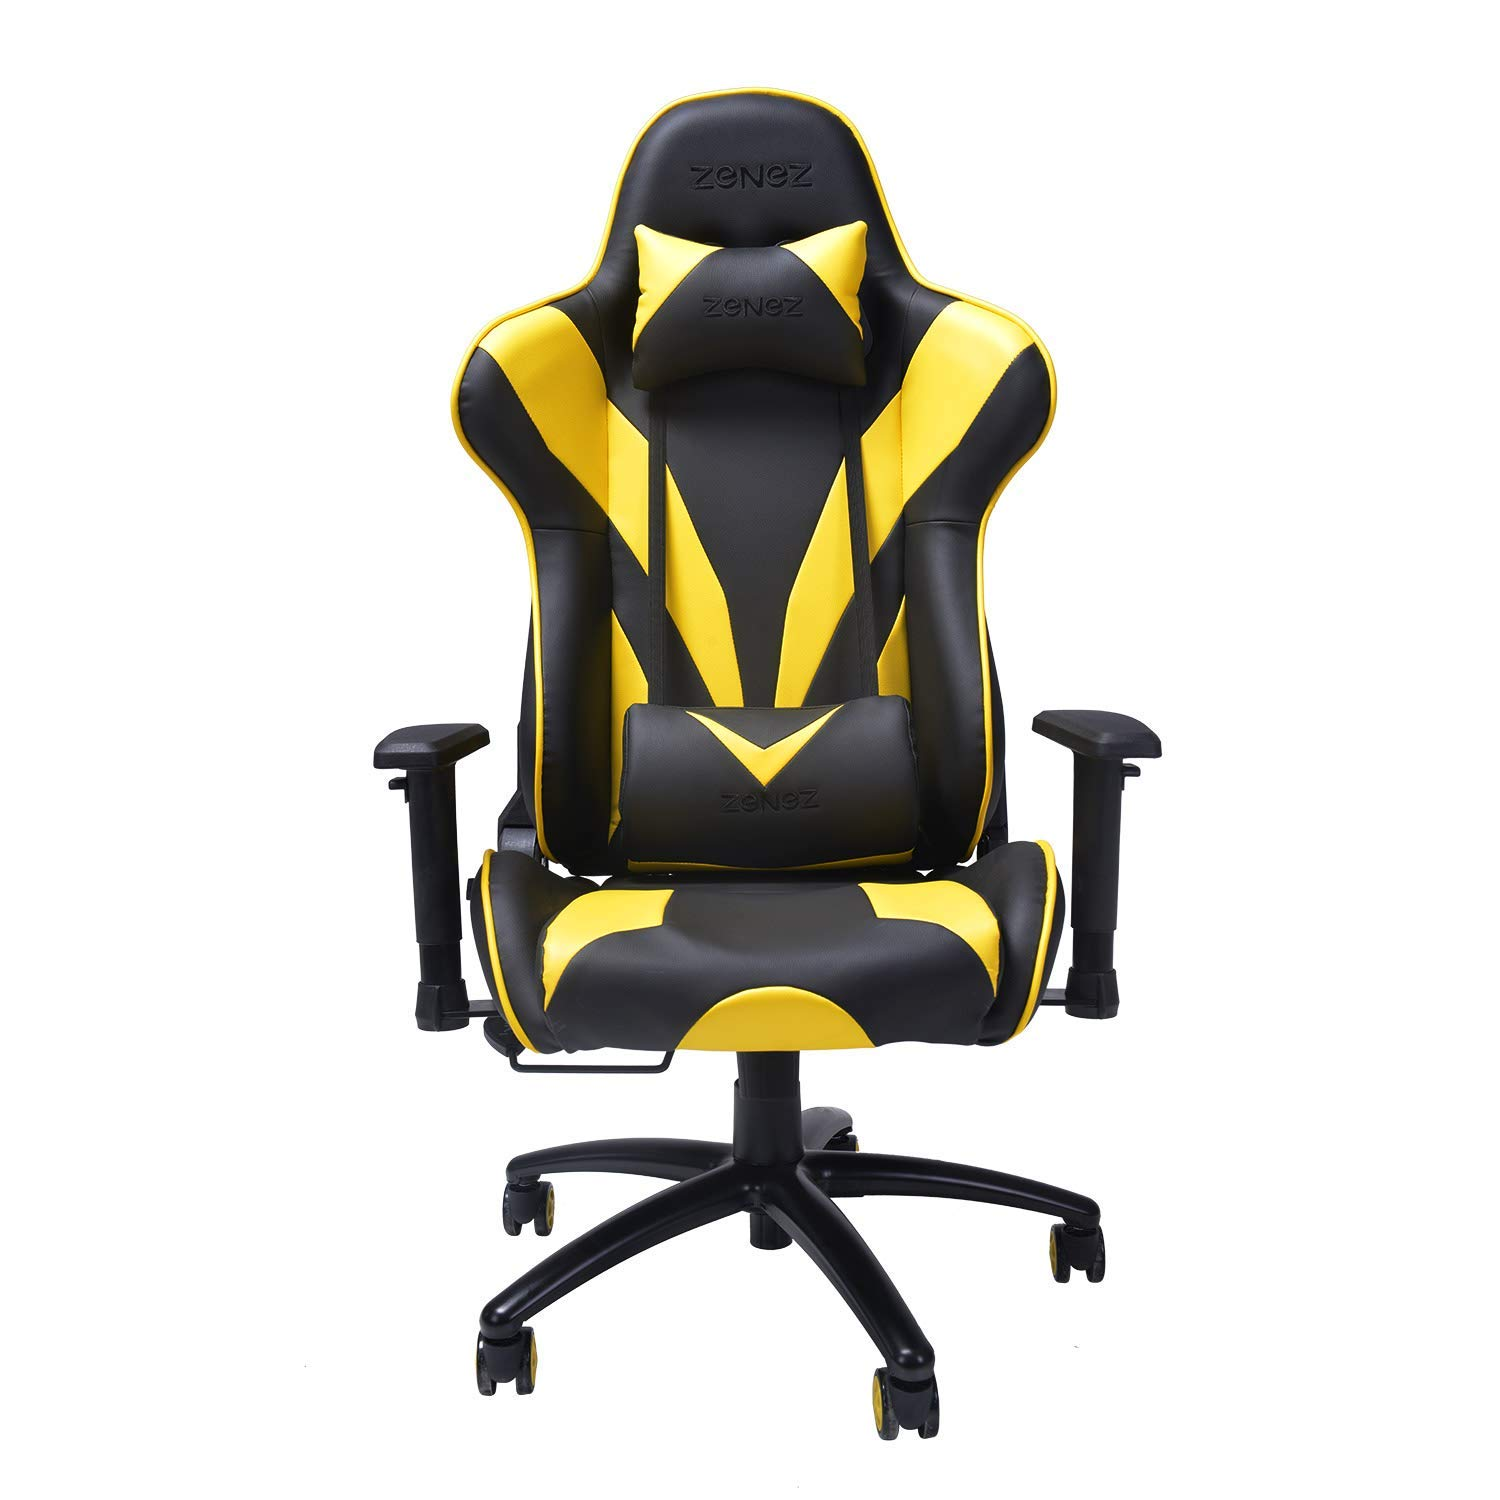 ZENEZ Gaming Chair Video Game Chairs Racing Style PU Leather High Back Adjustable with Headrest and Lumbar Support for Long Sessions of Computer Gaming or Office Working Chairs (Yellow) by ZENEZ